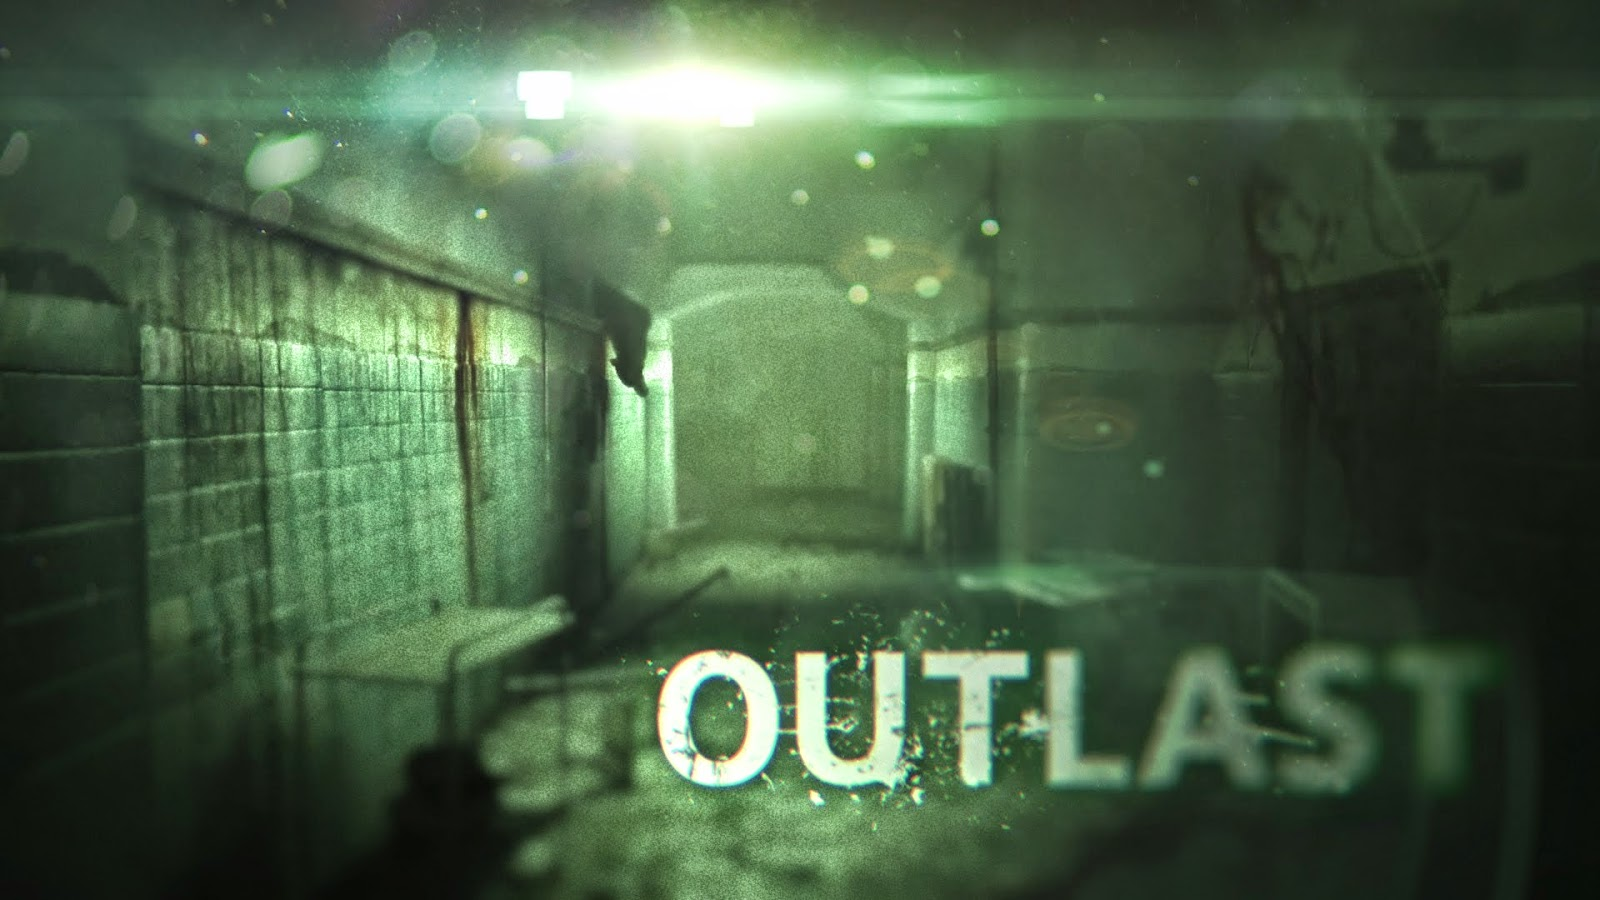 Outlast Gameplay for Android - APK Download